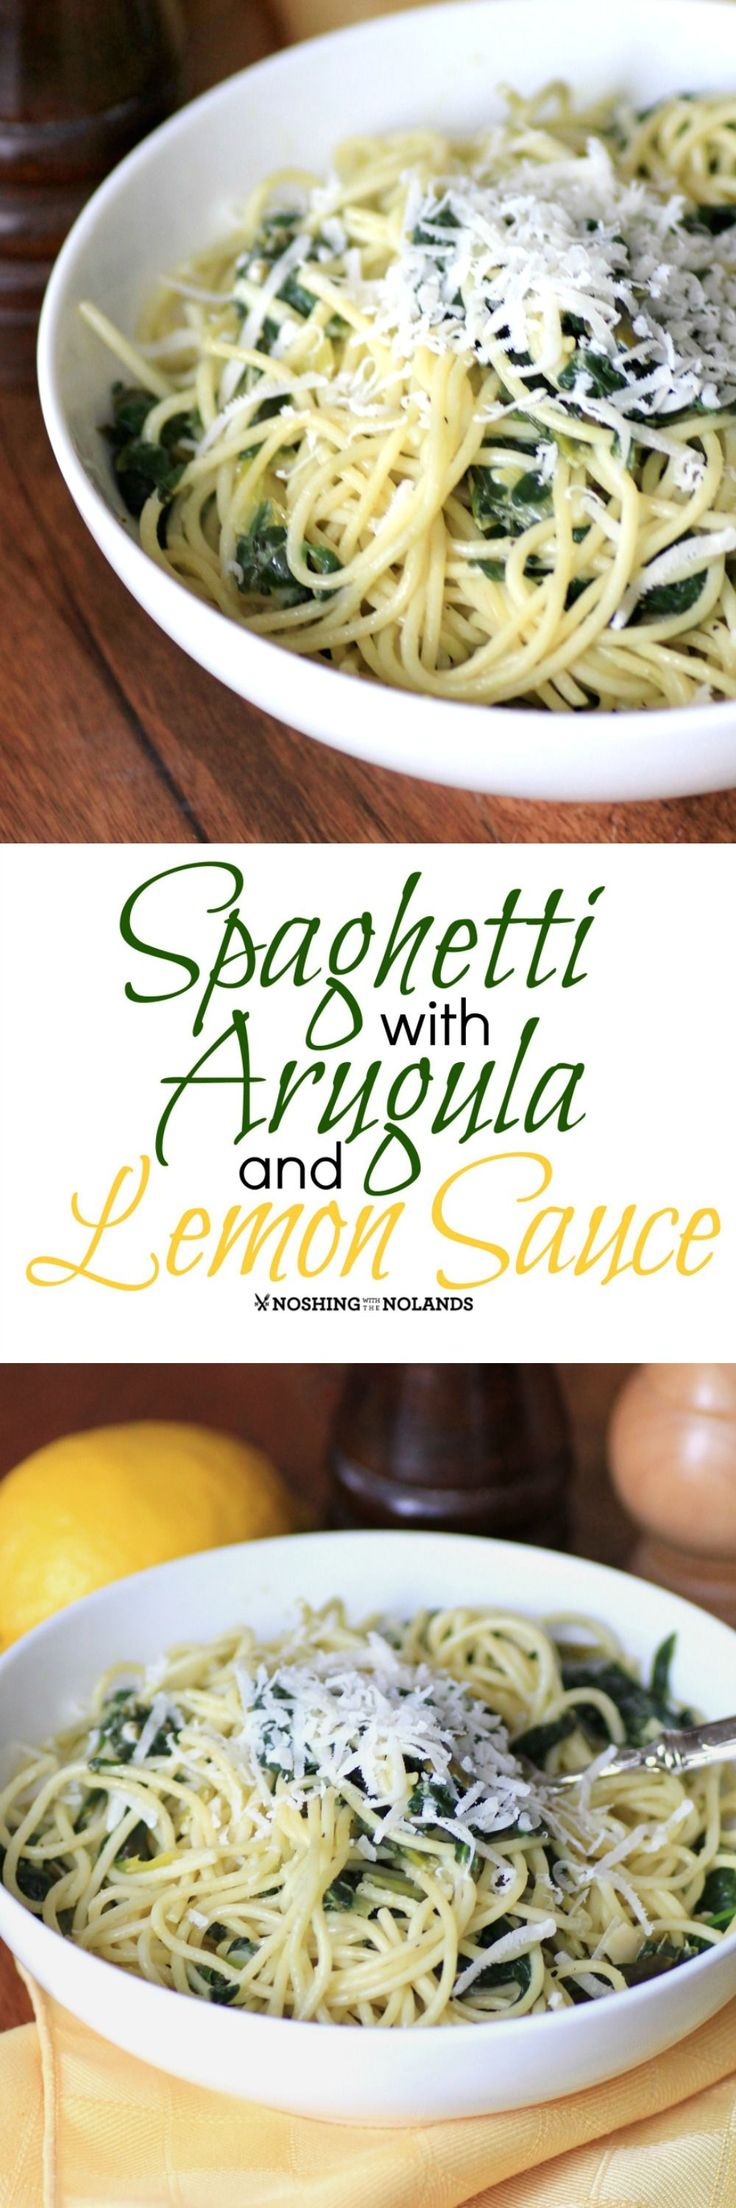 Spaghetti with Arugula and Lemon Sauce from Noshing With The Nolands is a fresh pasta dish filled with delicious flavor!